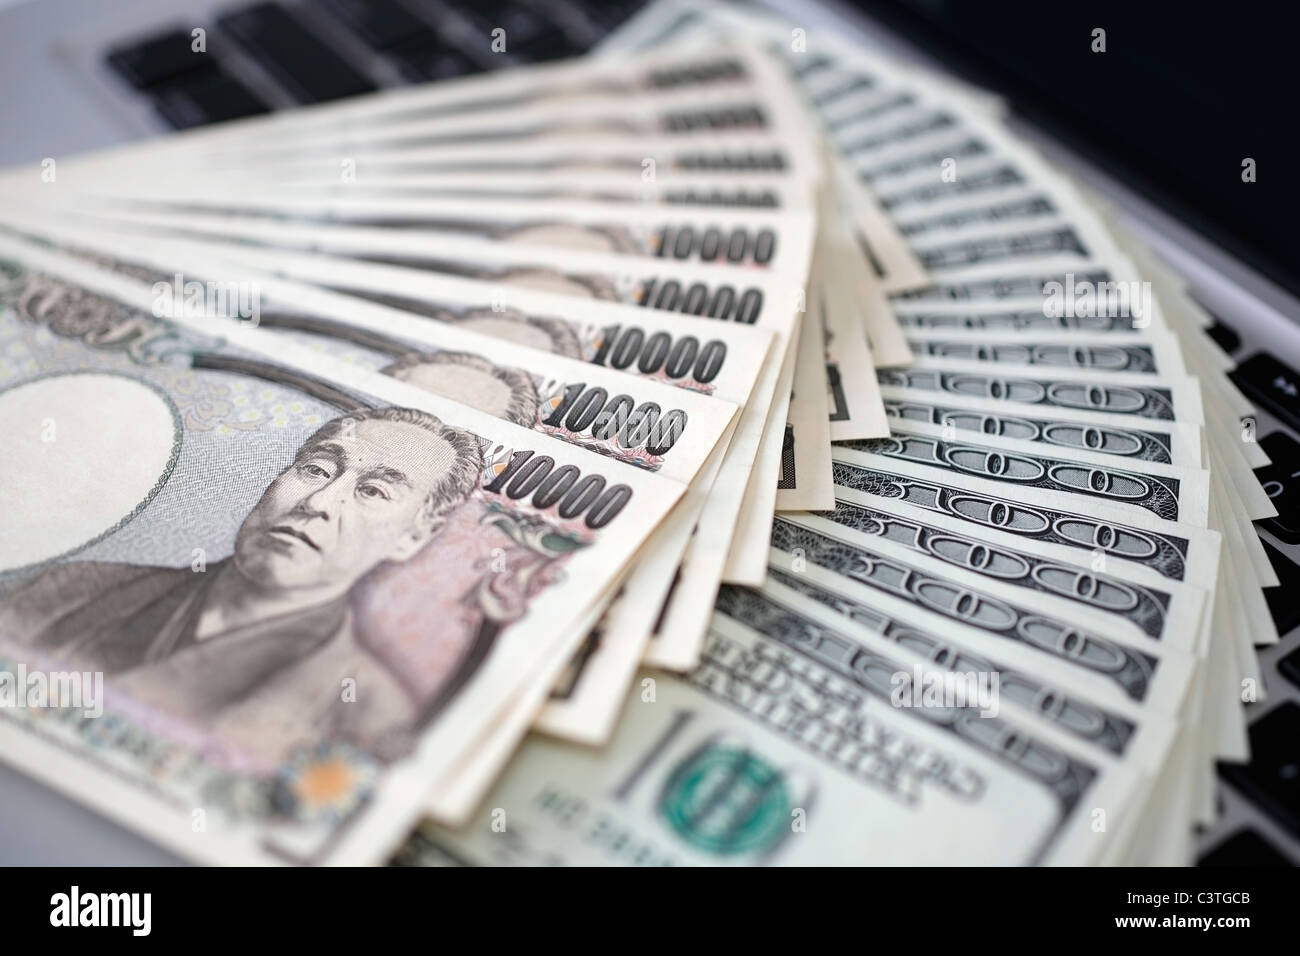 Computer keyboard and money - Stock Image